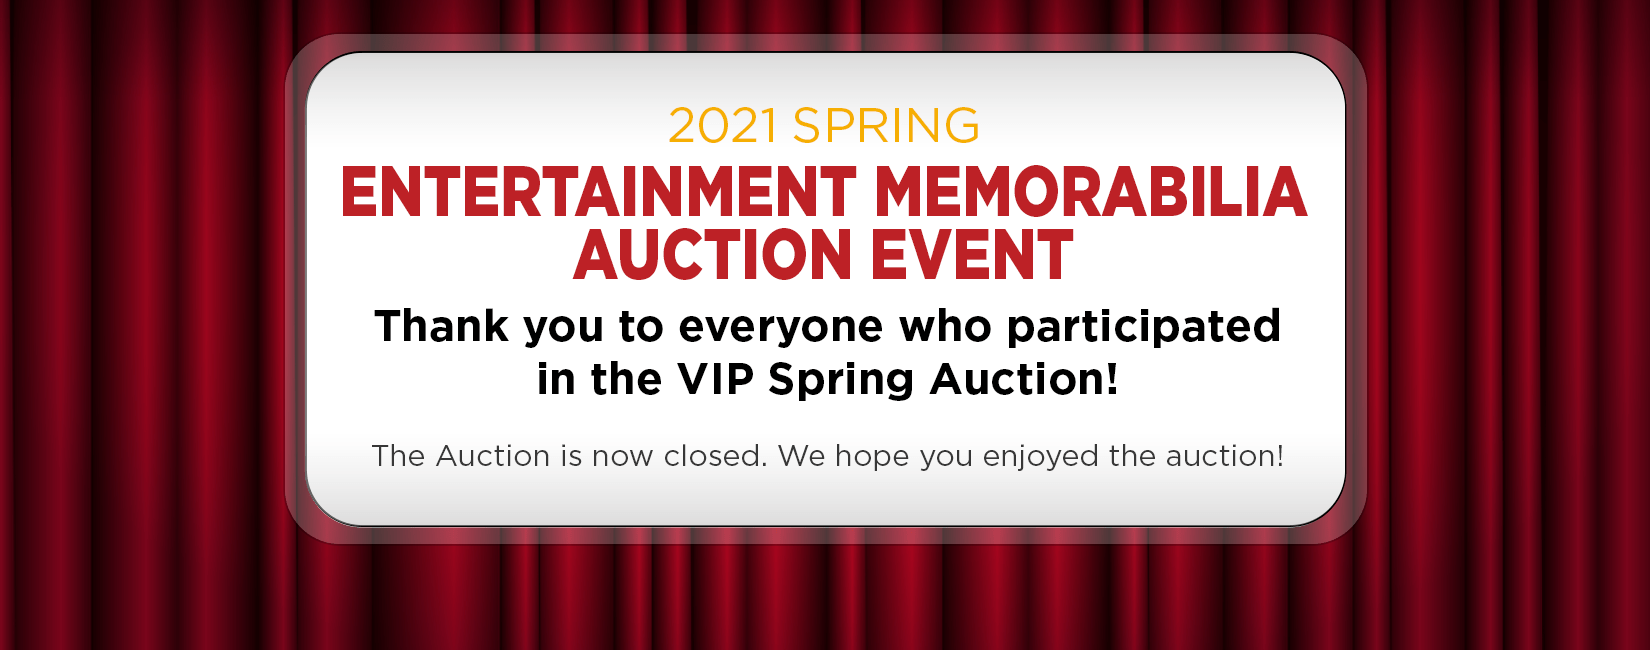 Thank you for participating in the Spring 2021 Auction